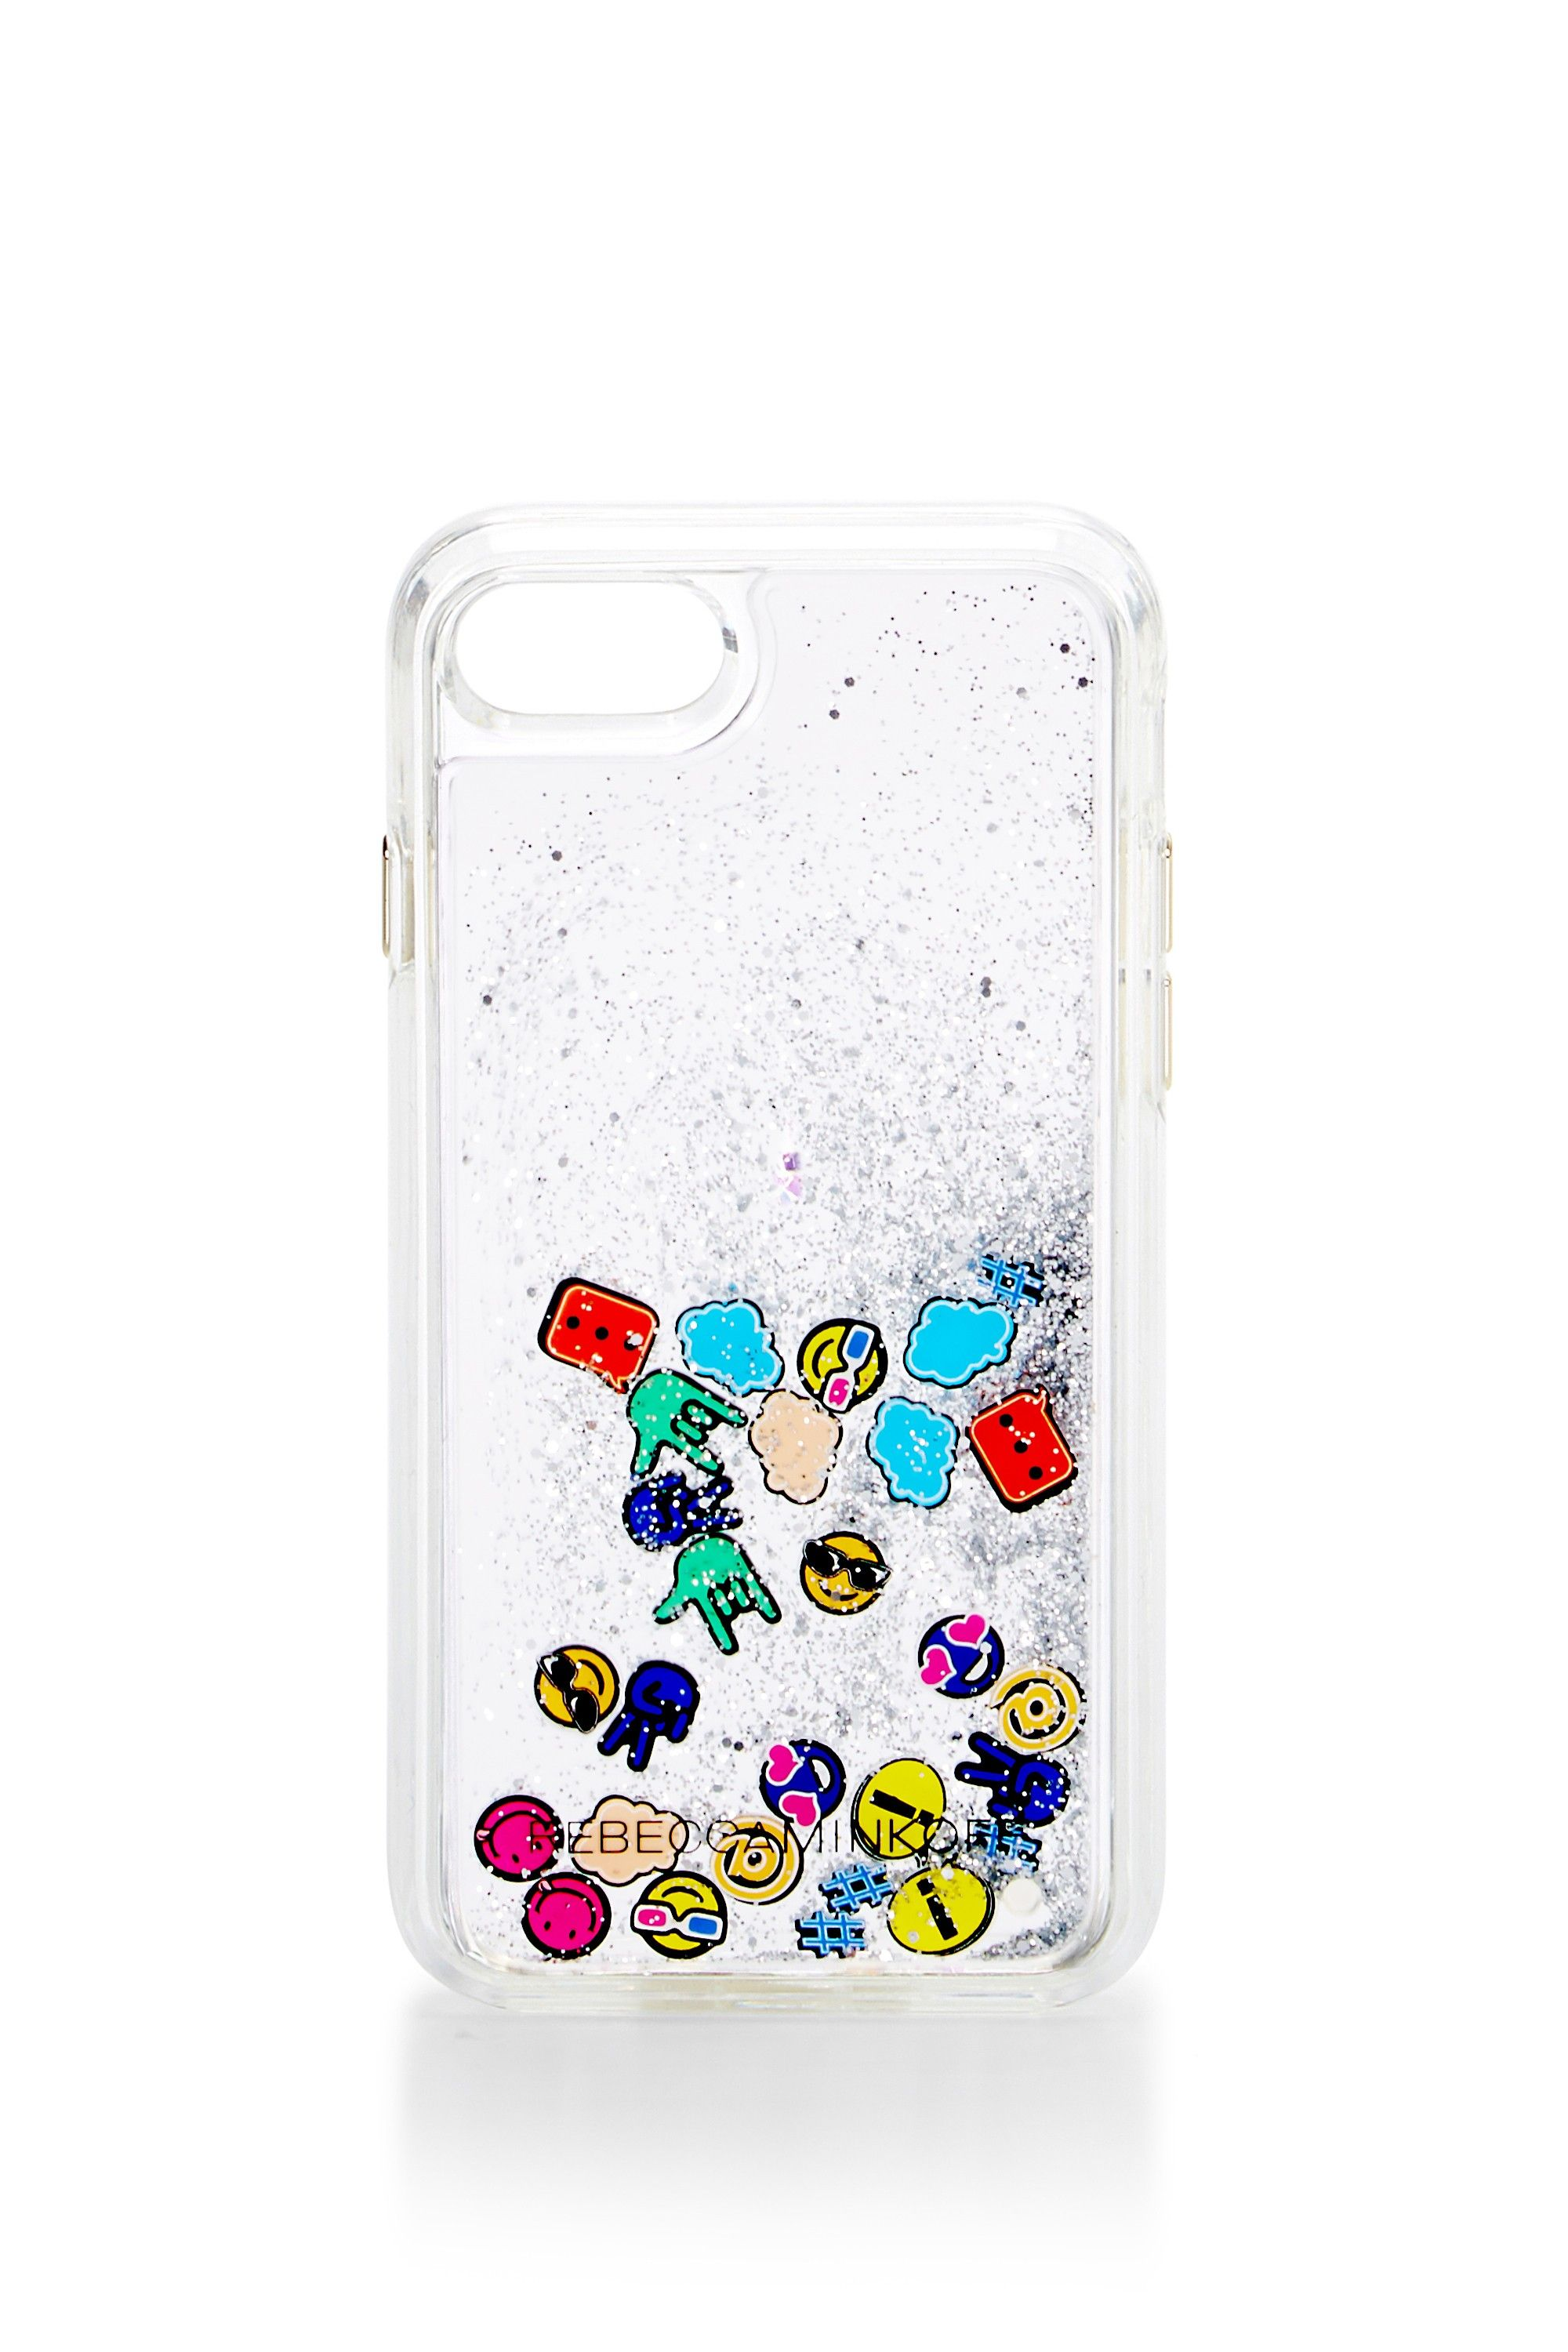 Emojis Glitterfall Case For Iphone 7 - Protect your phone in style with this durable phone case. Compatible with iPhone 7.